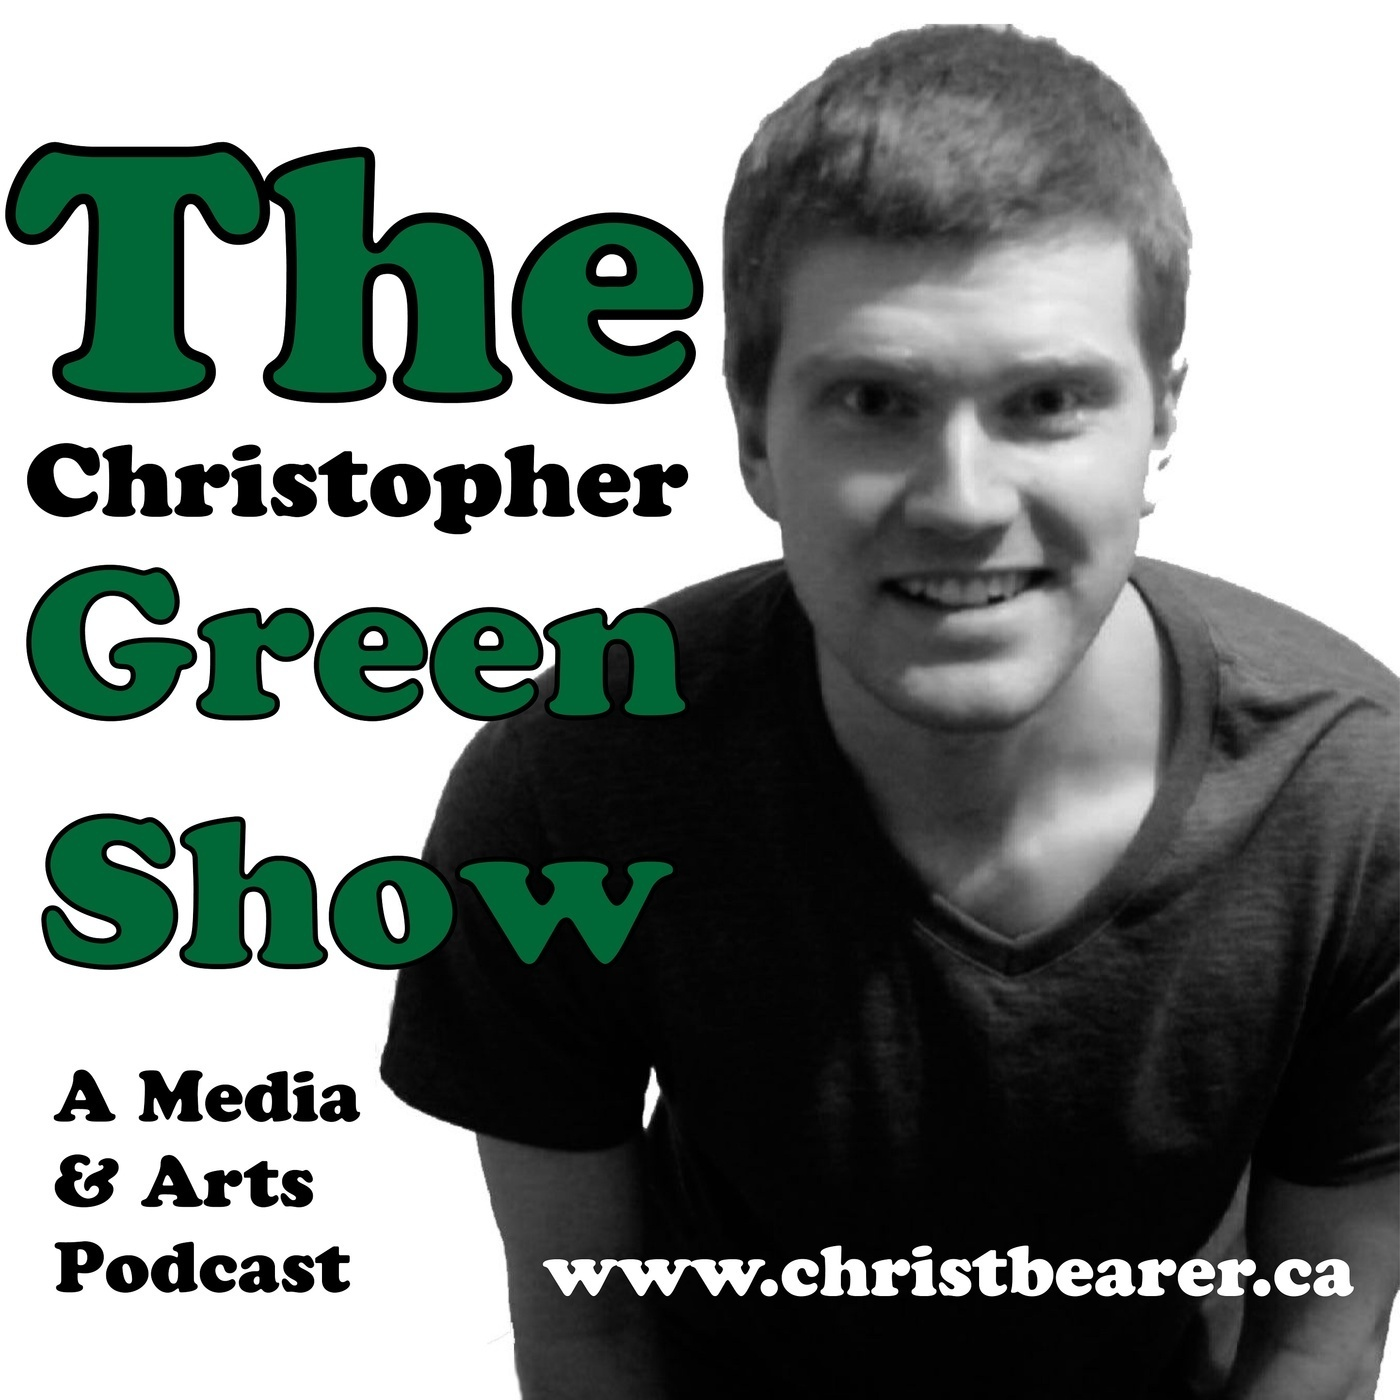 The Christopher Green Show | A Media/Arts Talk Podcast